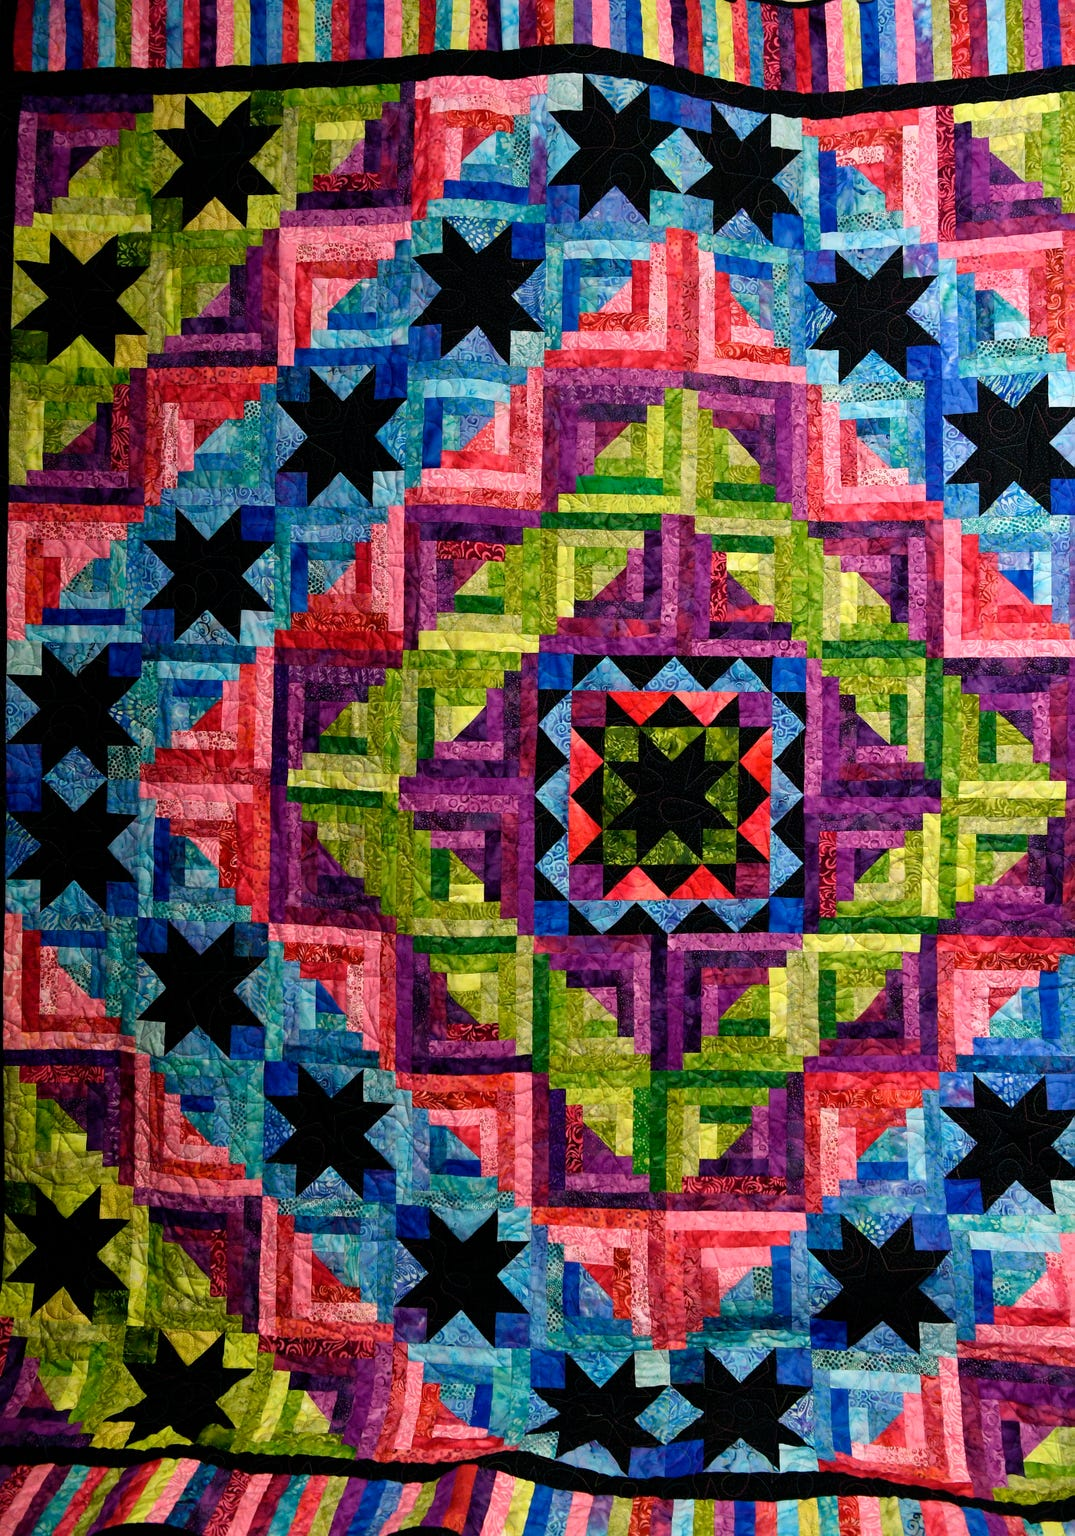 """The quilt """"Bright Star Ripple"""" will be raffled to benefit Cancer Services Network of Abilene during the Abilene Quilters Guild's 25th Regional Quilt Show."""